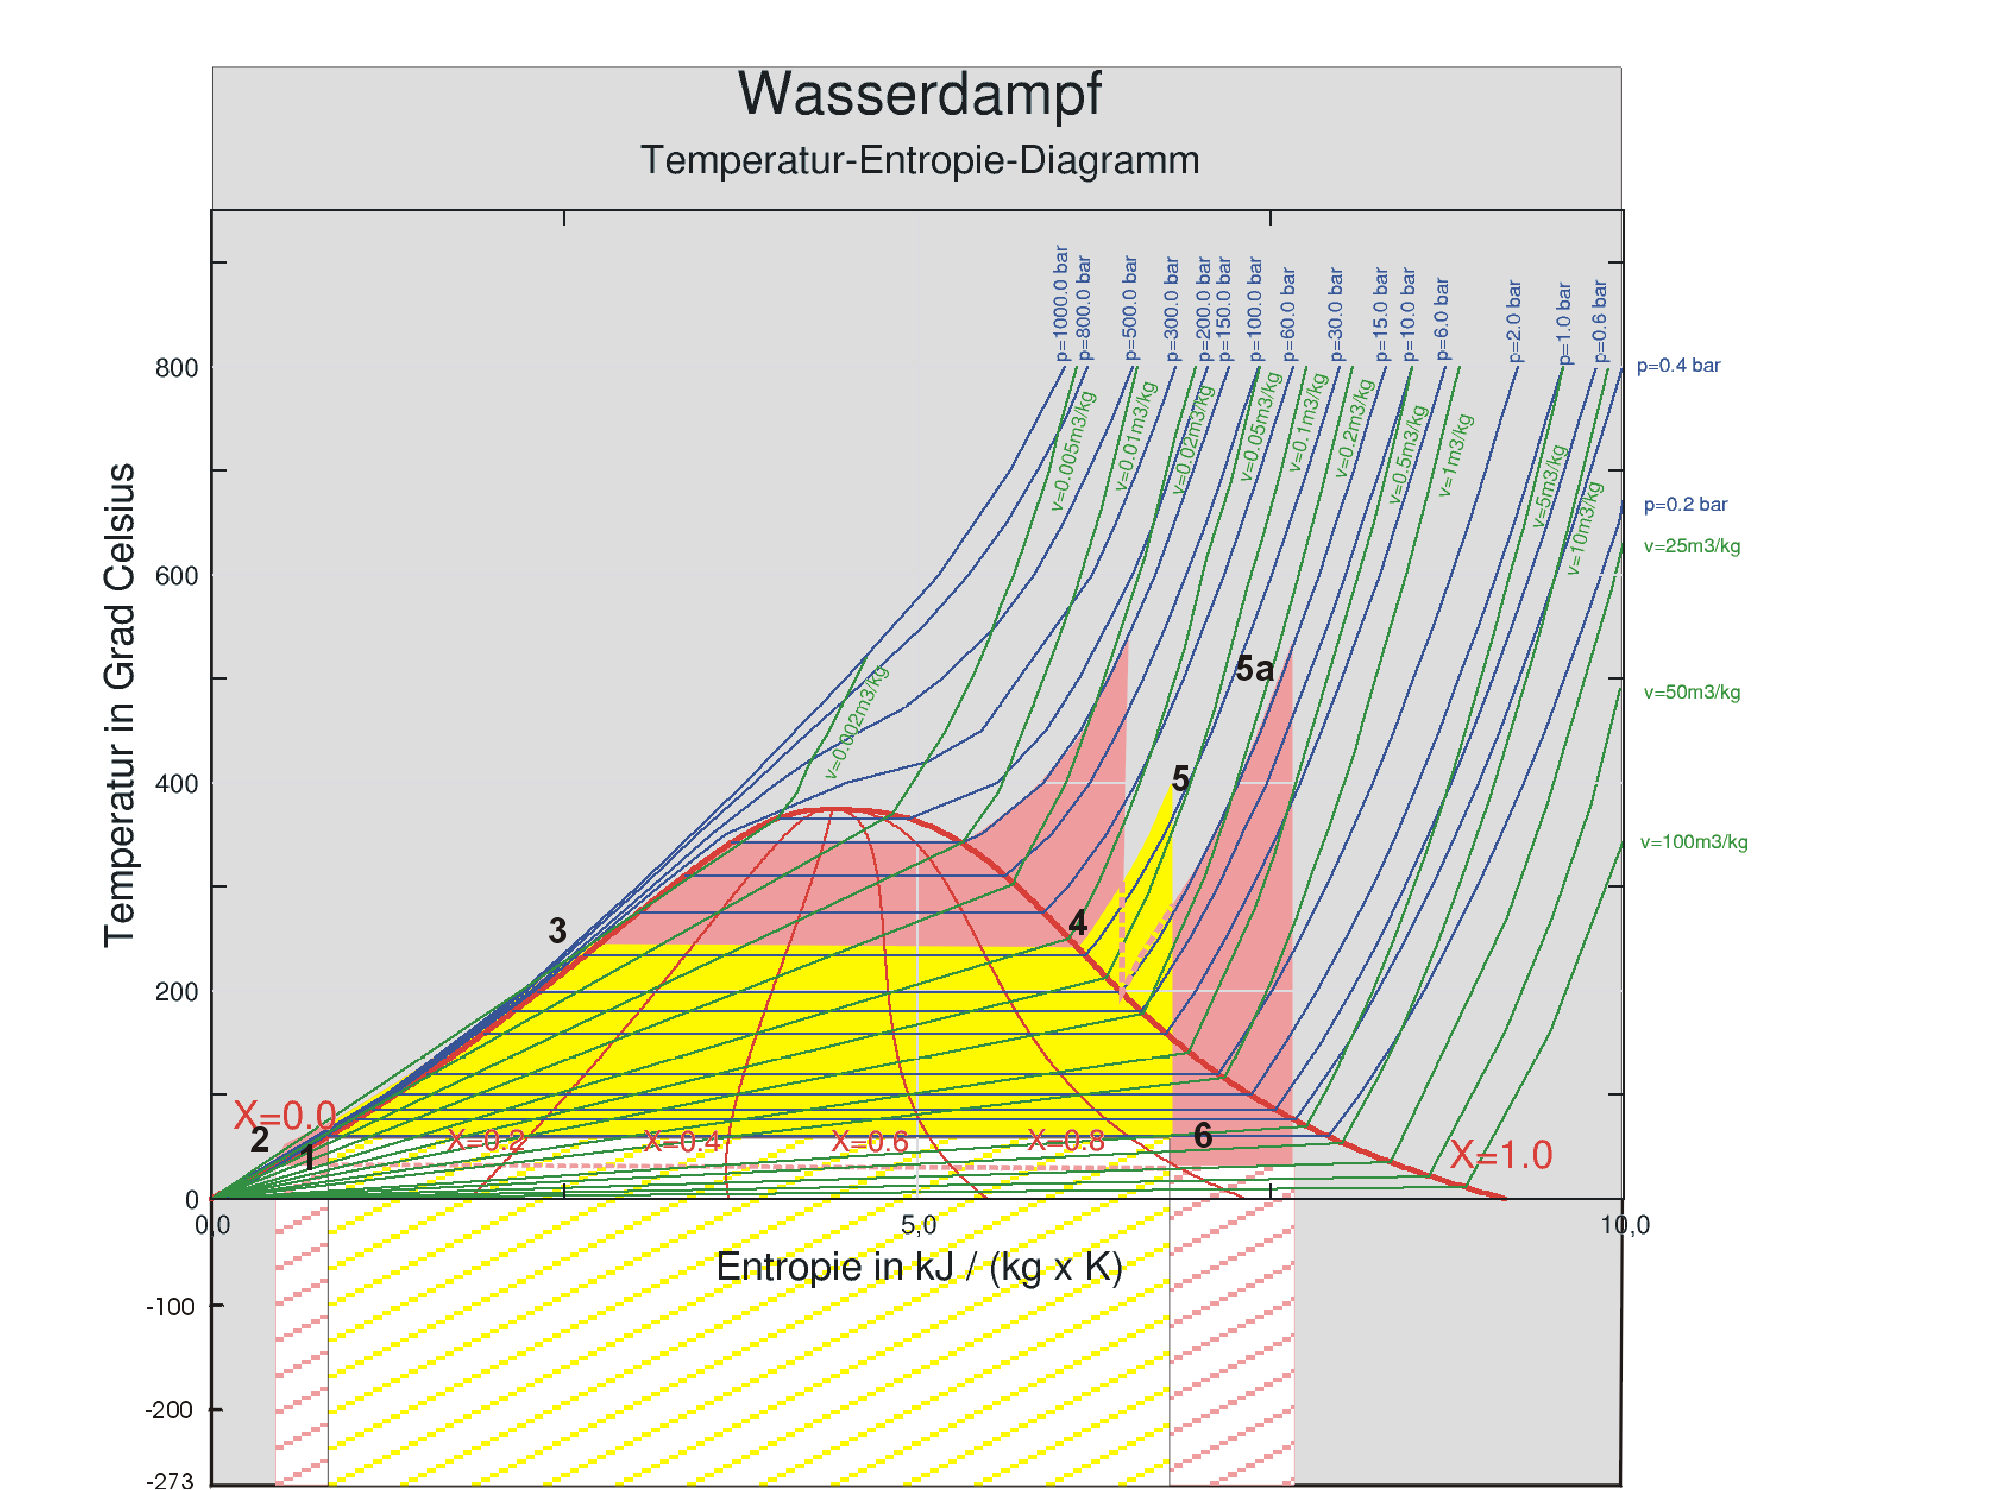 File:Dampfkessel im TS-Diagramm.png - Wikimedia Commons